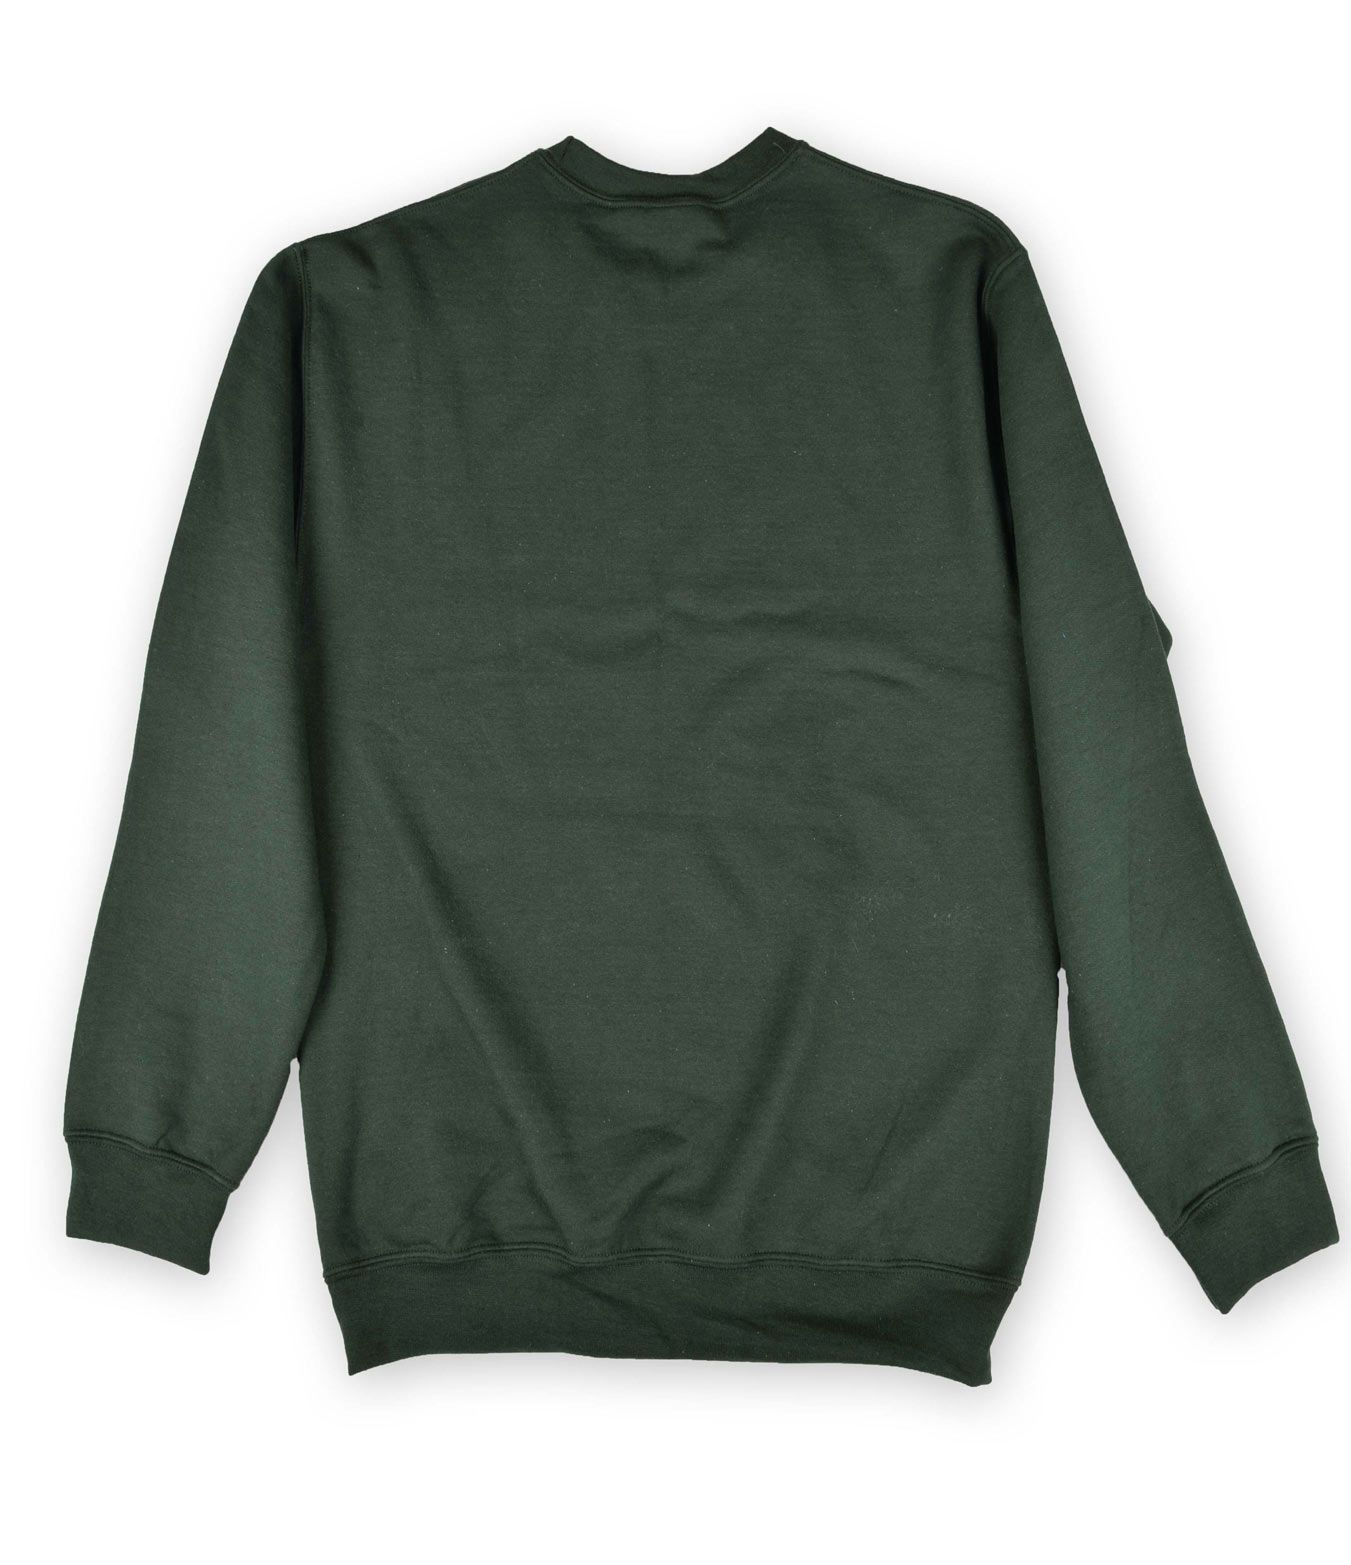 Poloshow sweater green 2